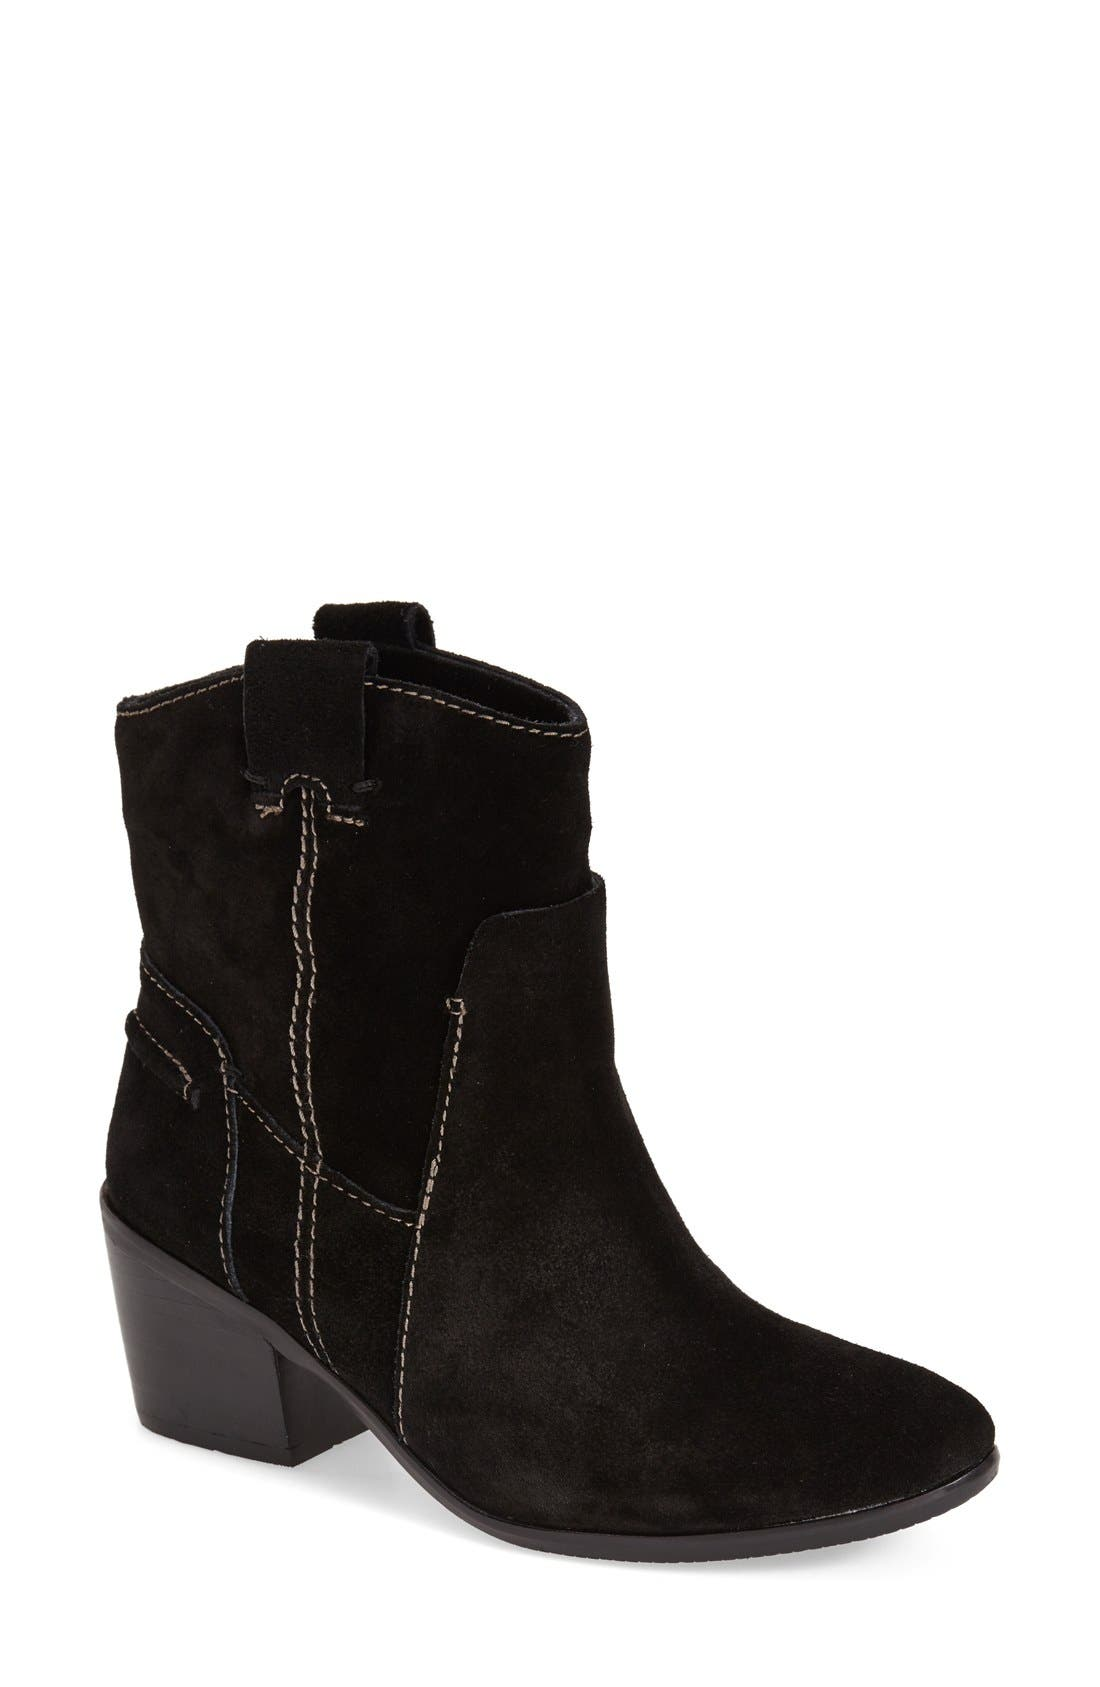 Main Image - Vince Camuto 'Maves' Bootie (Women) (Nordstrom Exclusive)